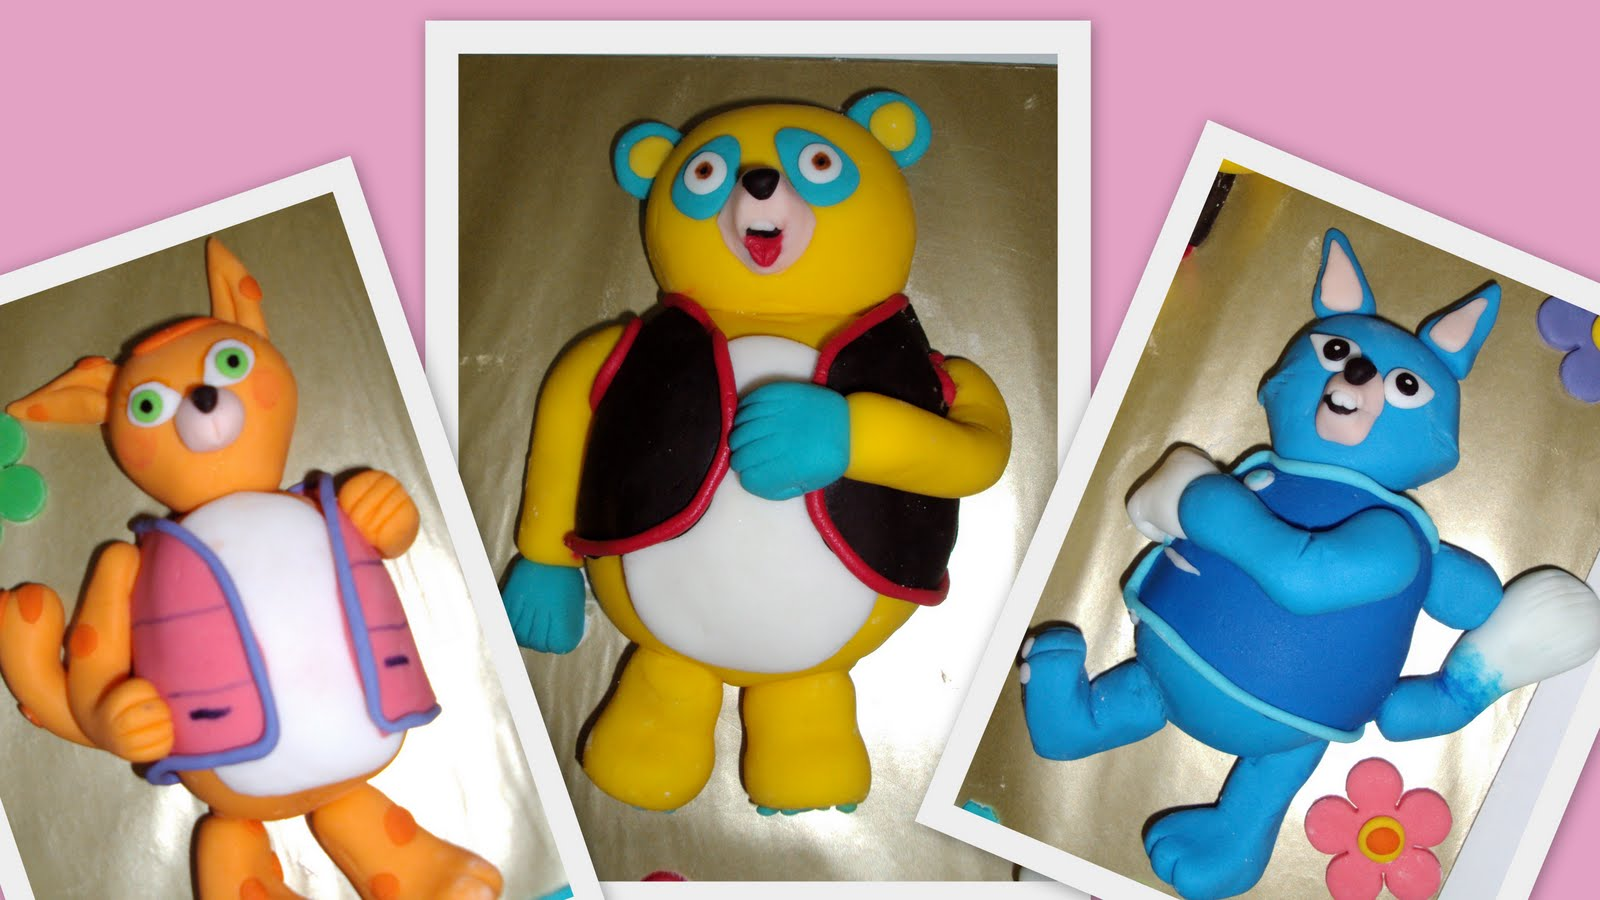 Special+agent+oso+wolfie